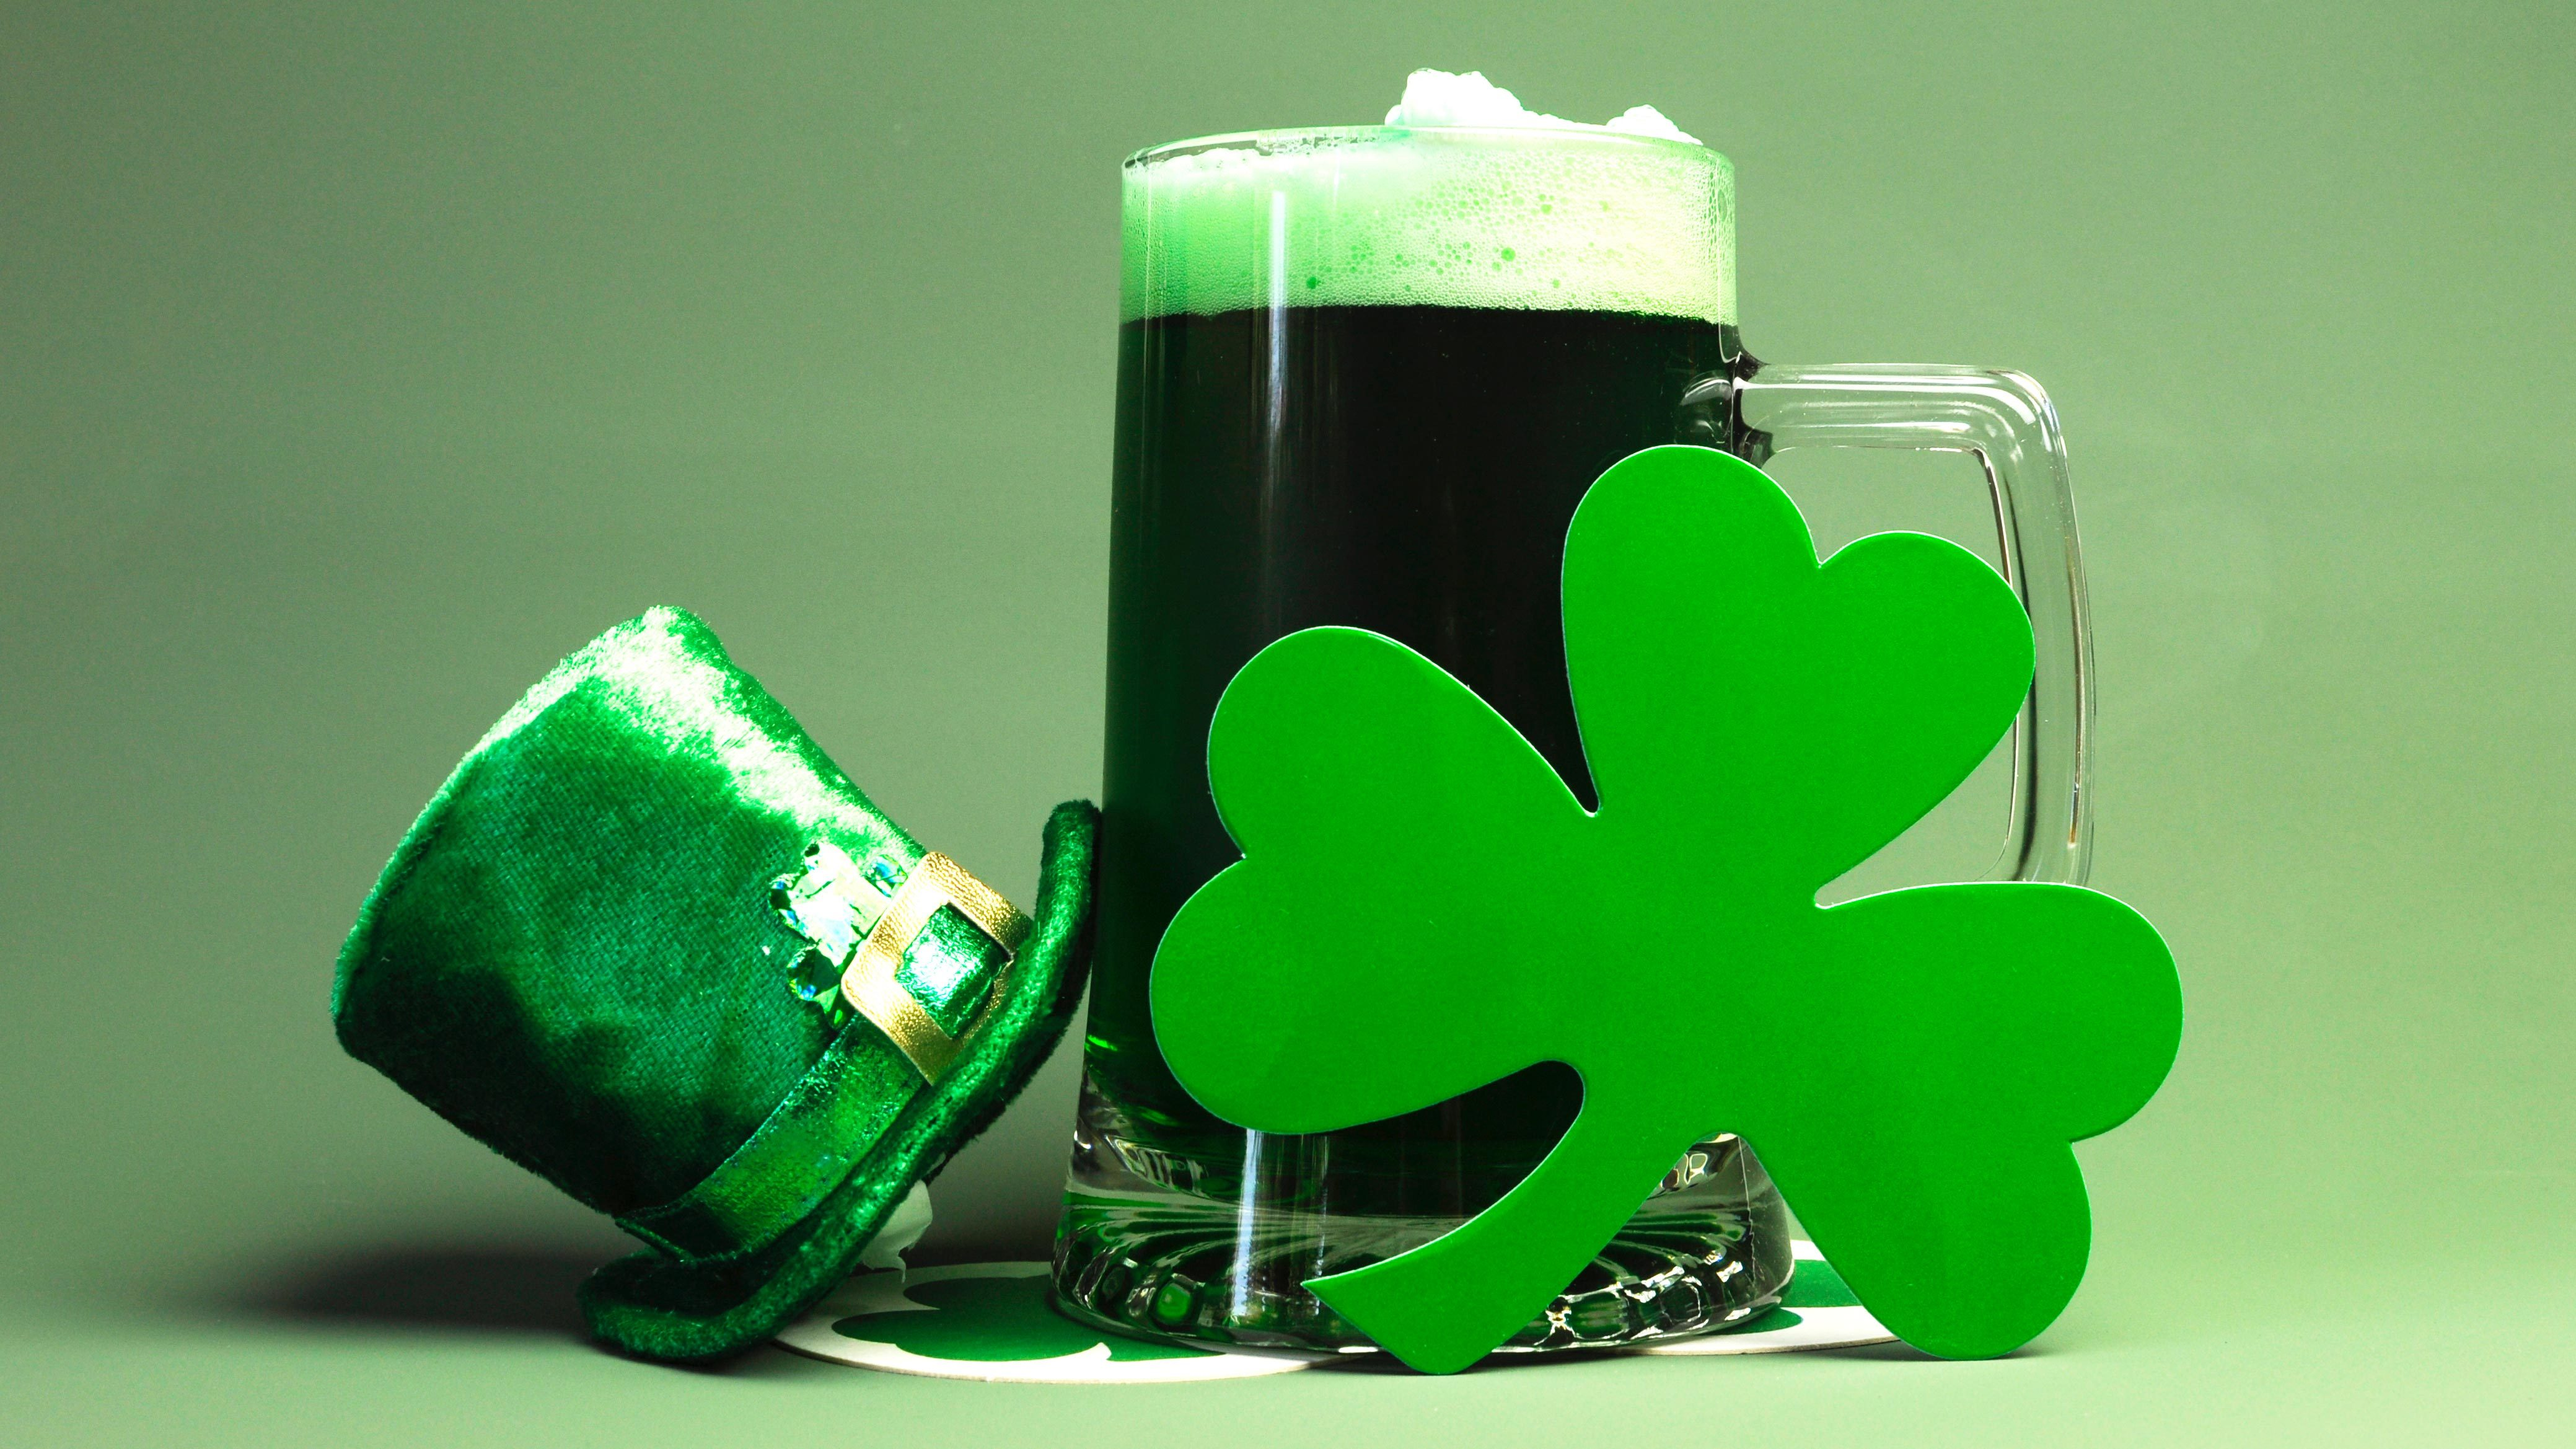 How Did St. Patrick's Day Become a Drinking Holiday? | Reader's Digest